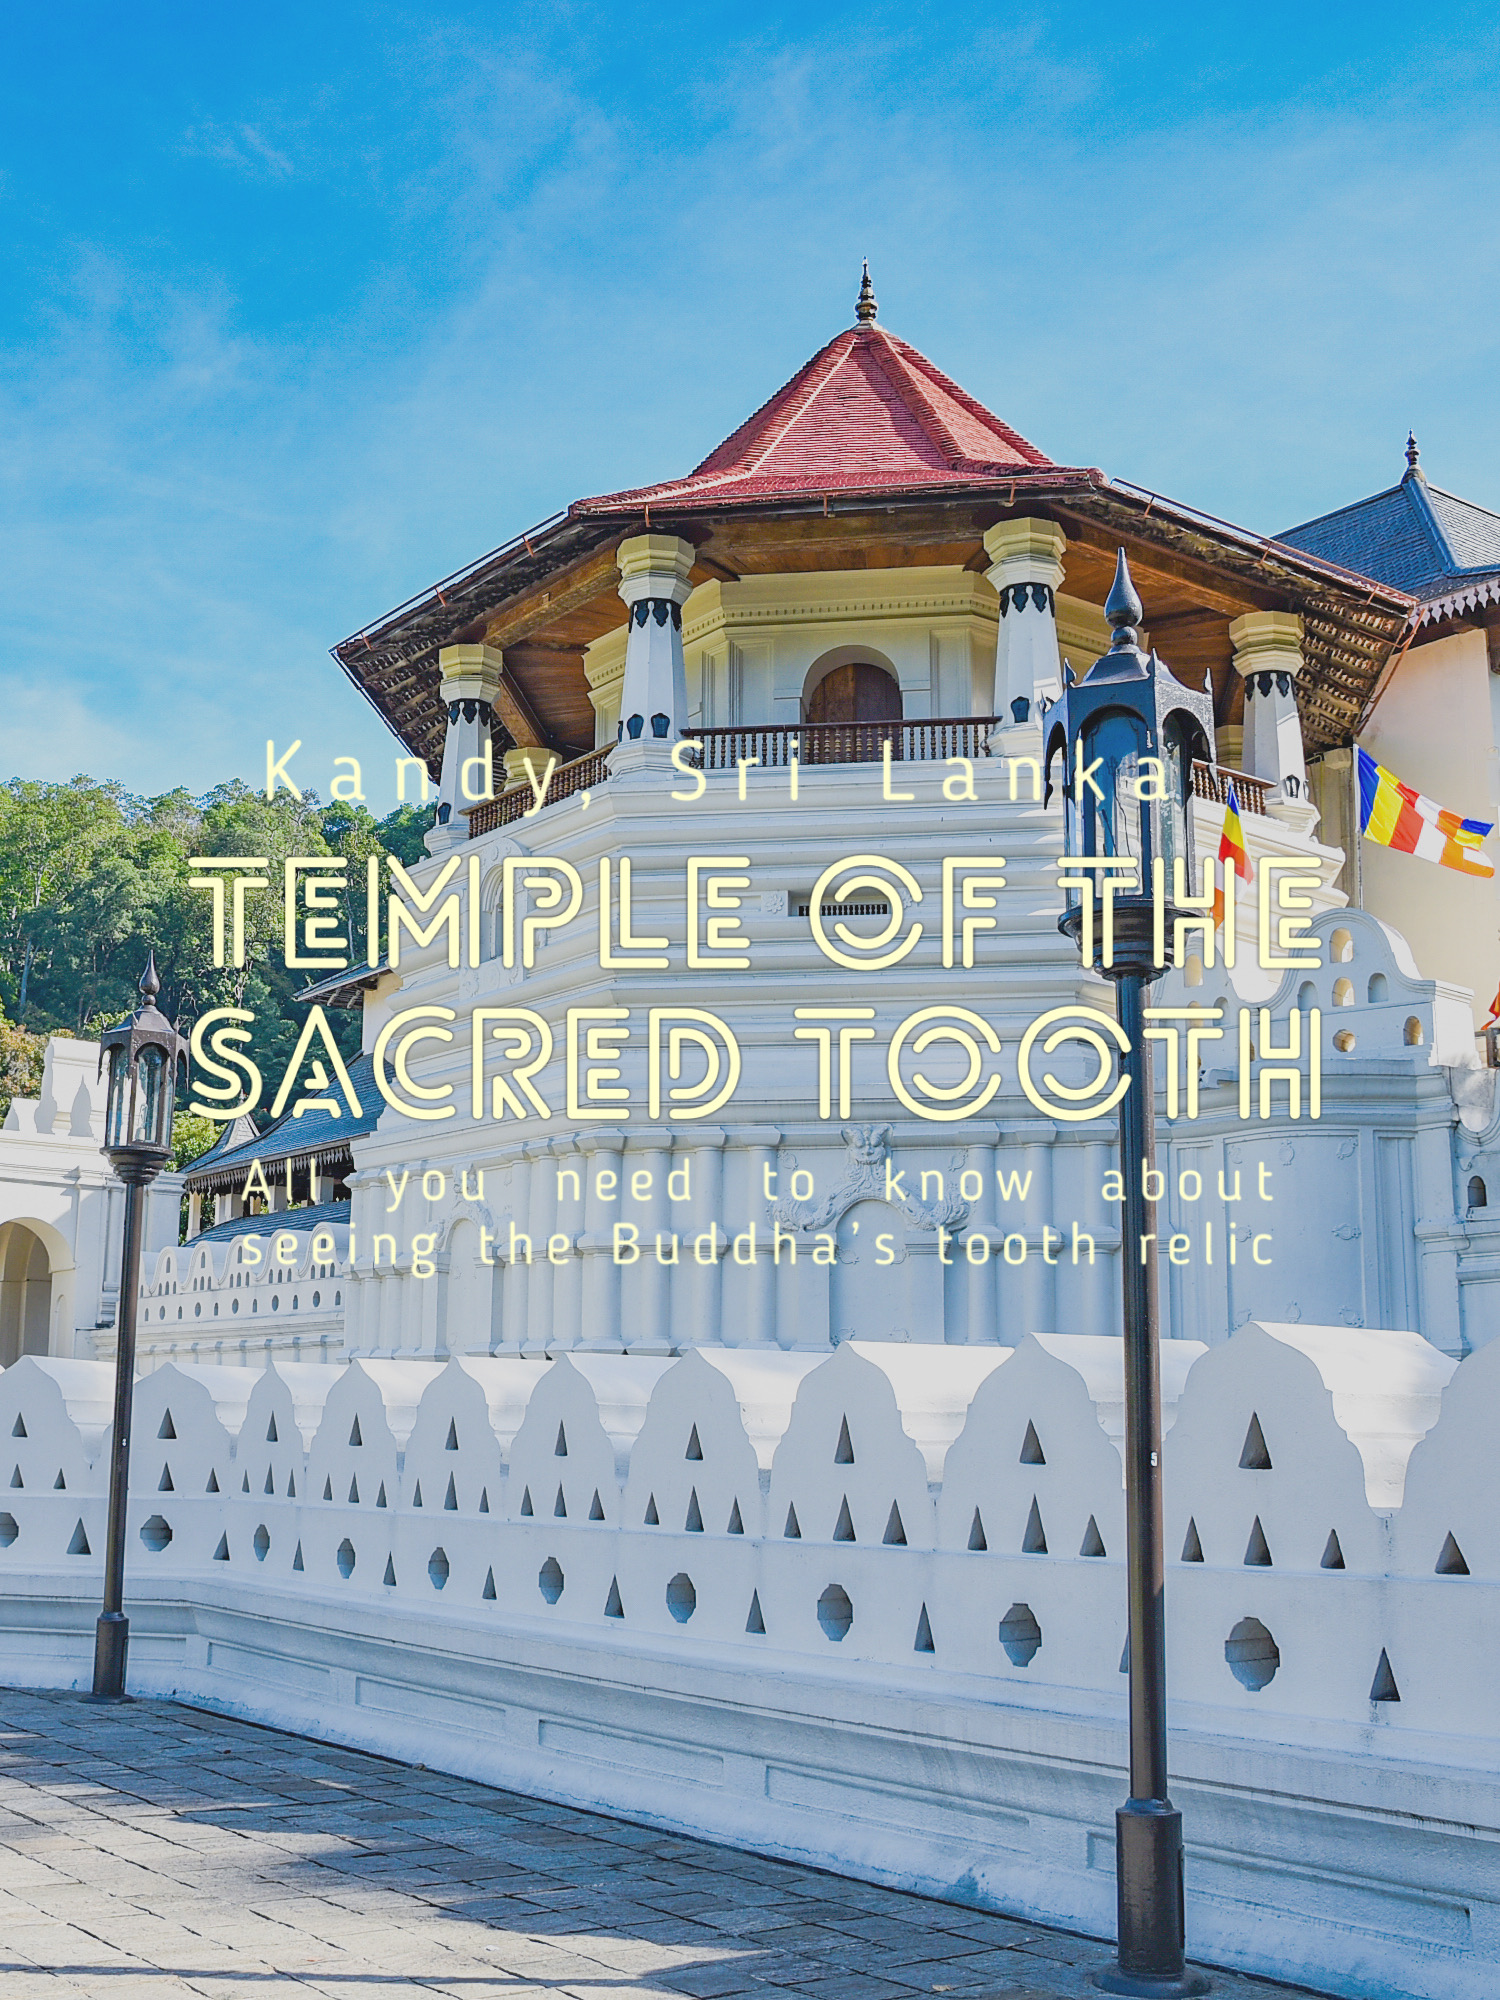 Kandy: Guide to the Temple of the Sacred Tooth